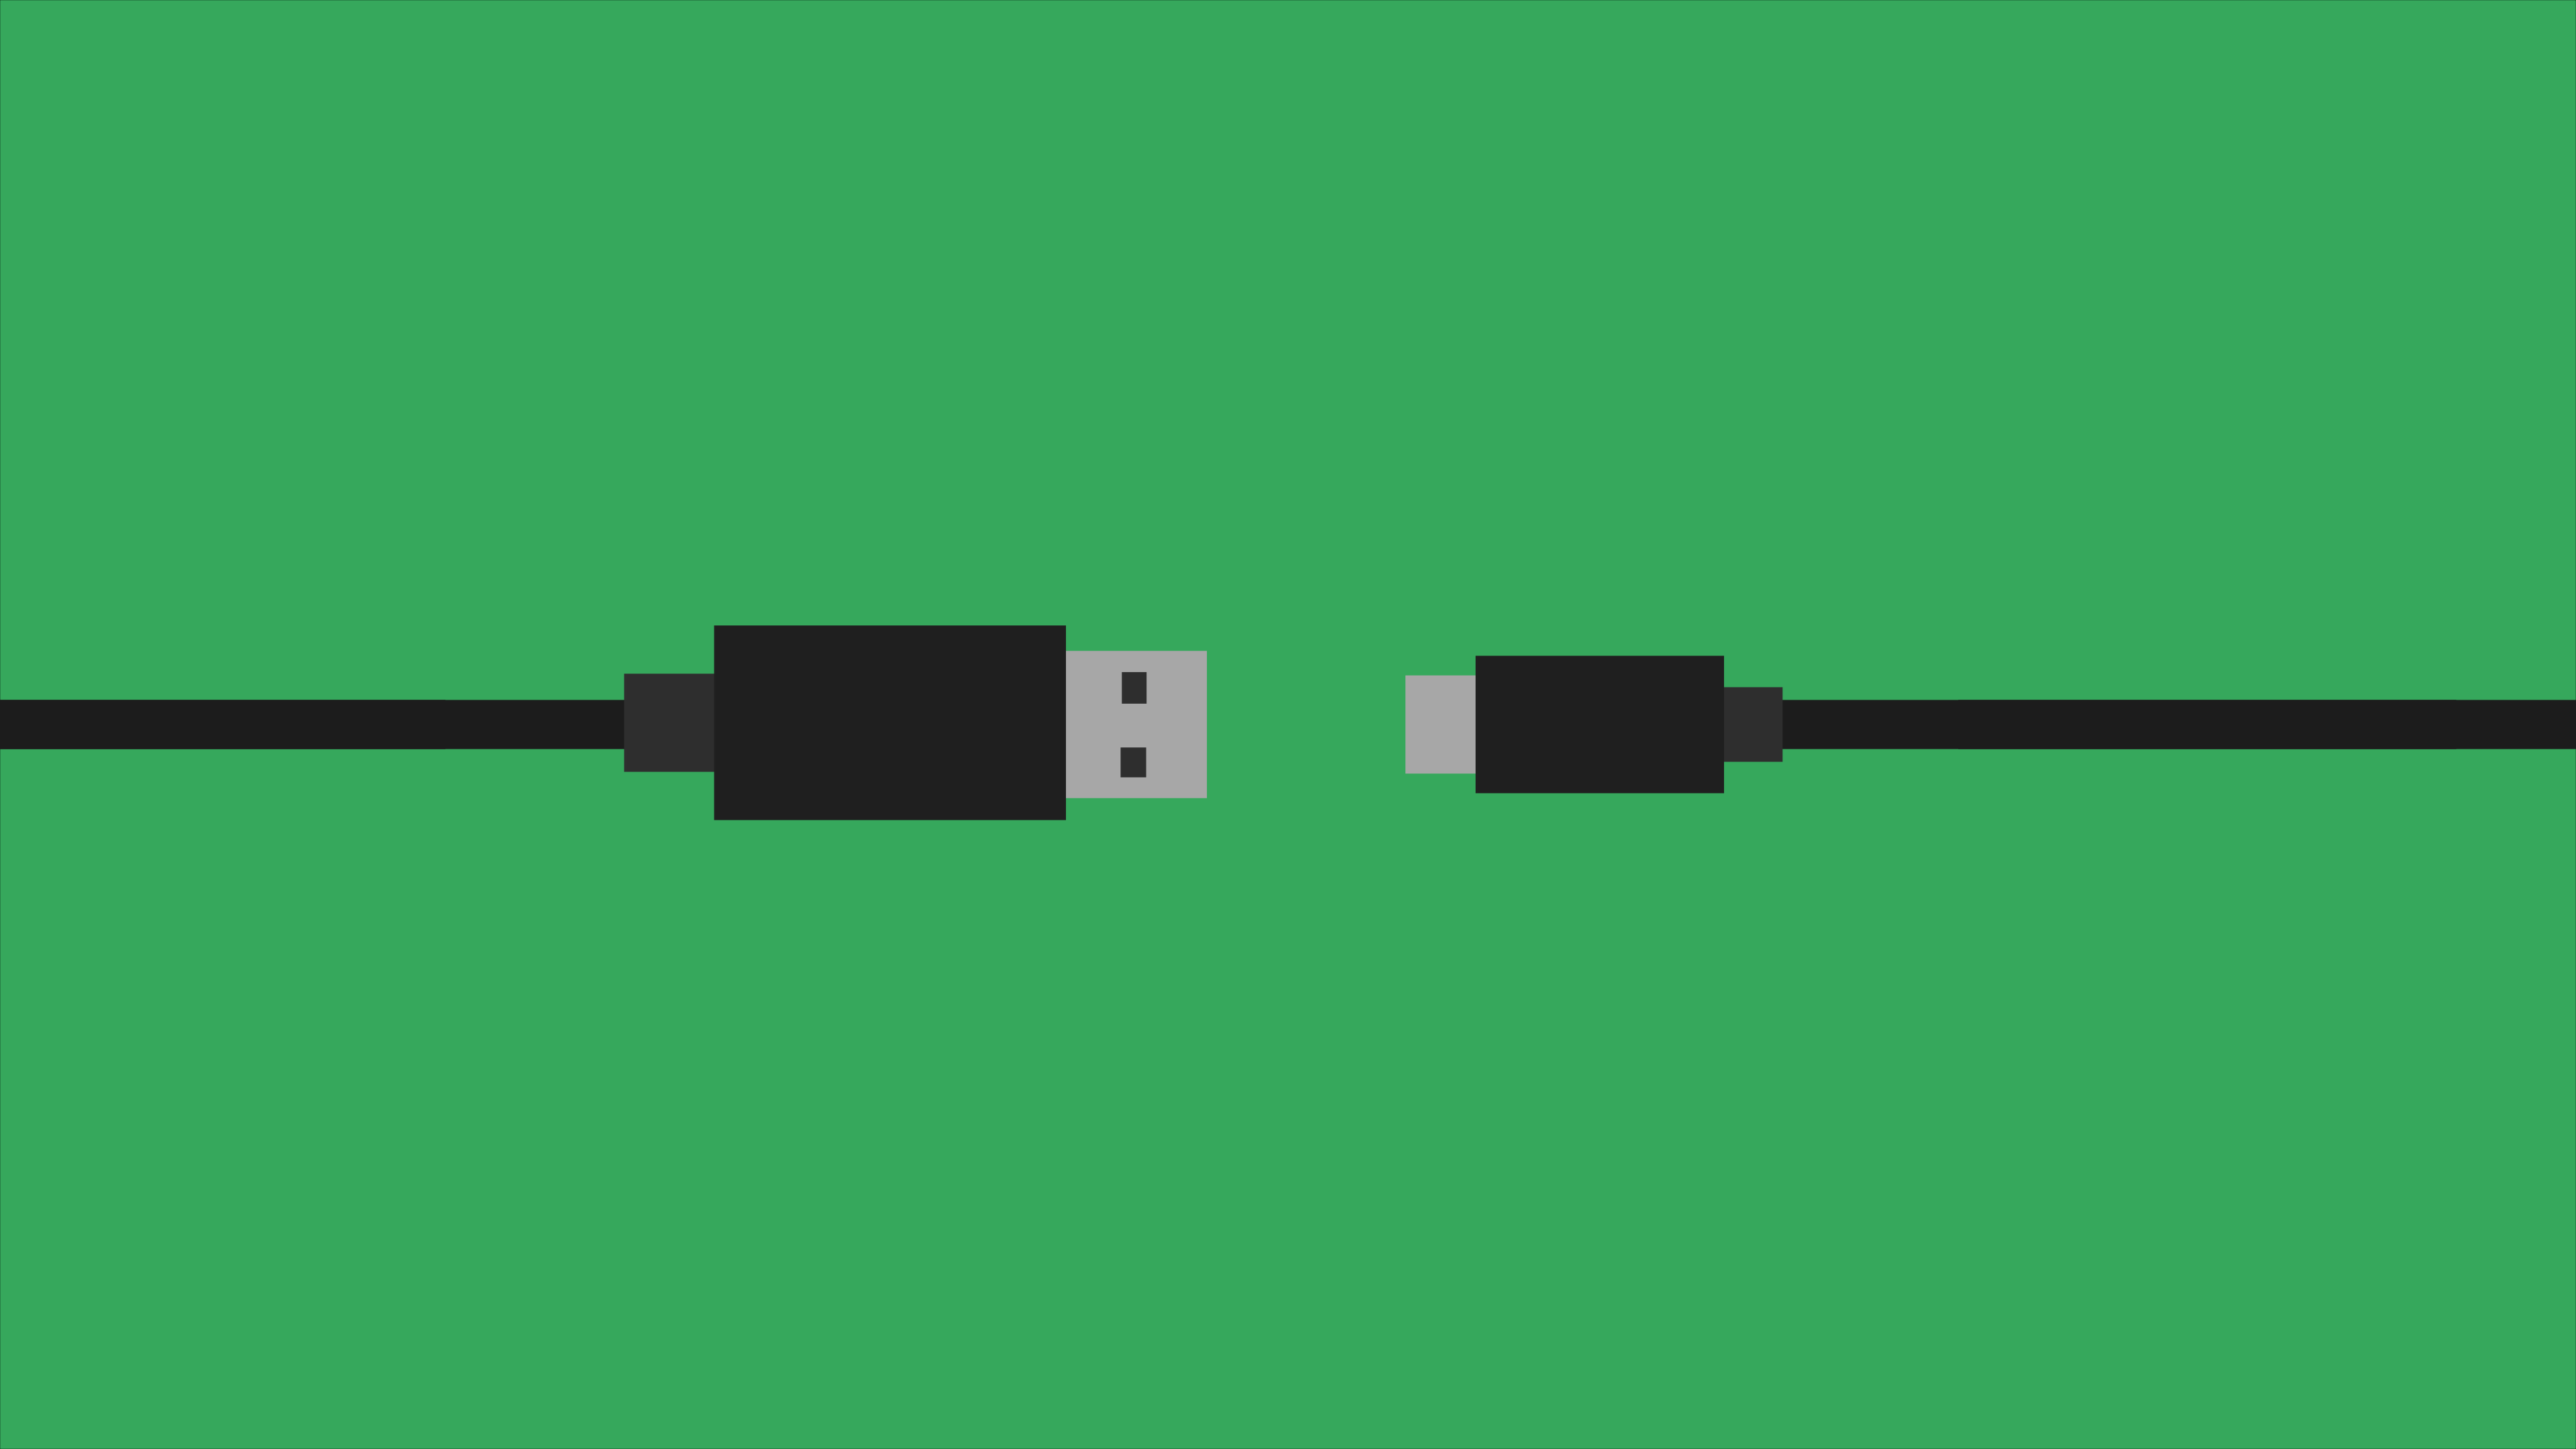 USB Type-C vs USB 3.0